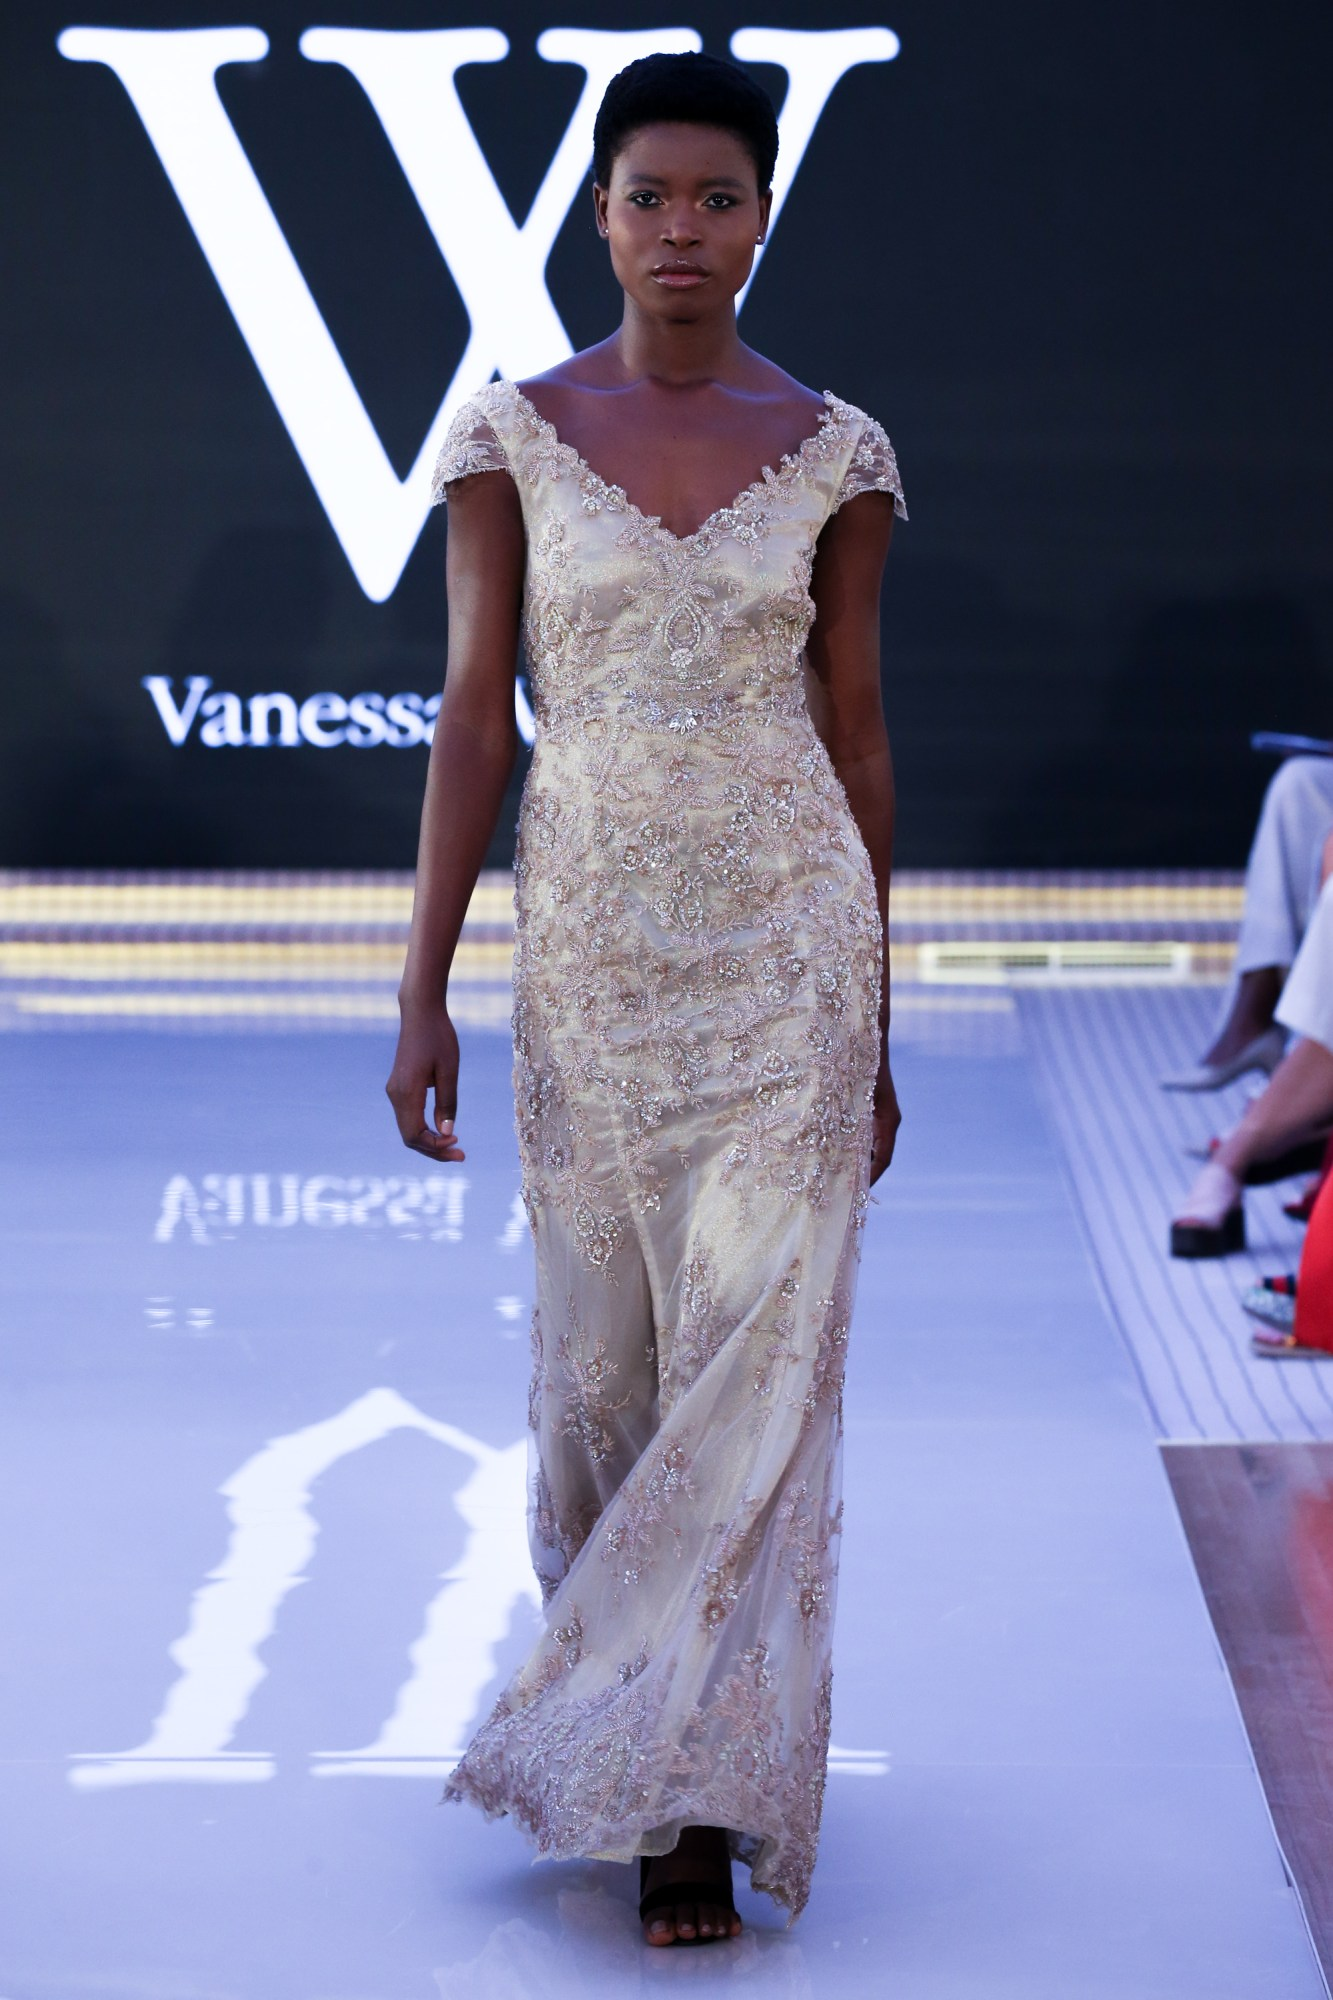 Vanessa Villafane